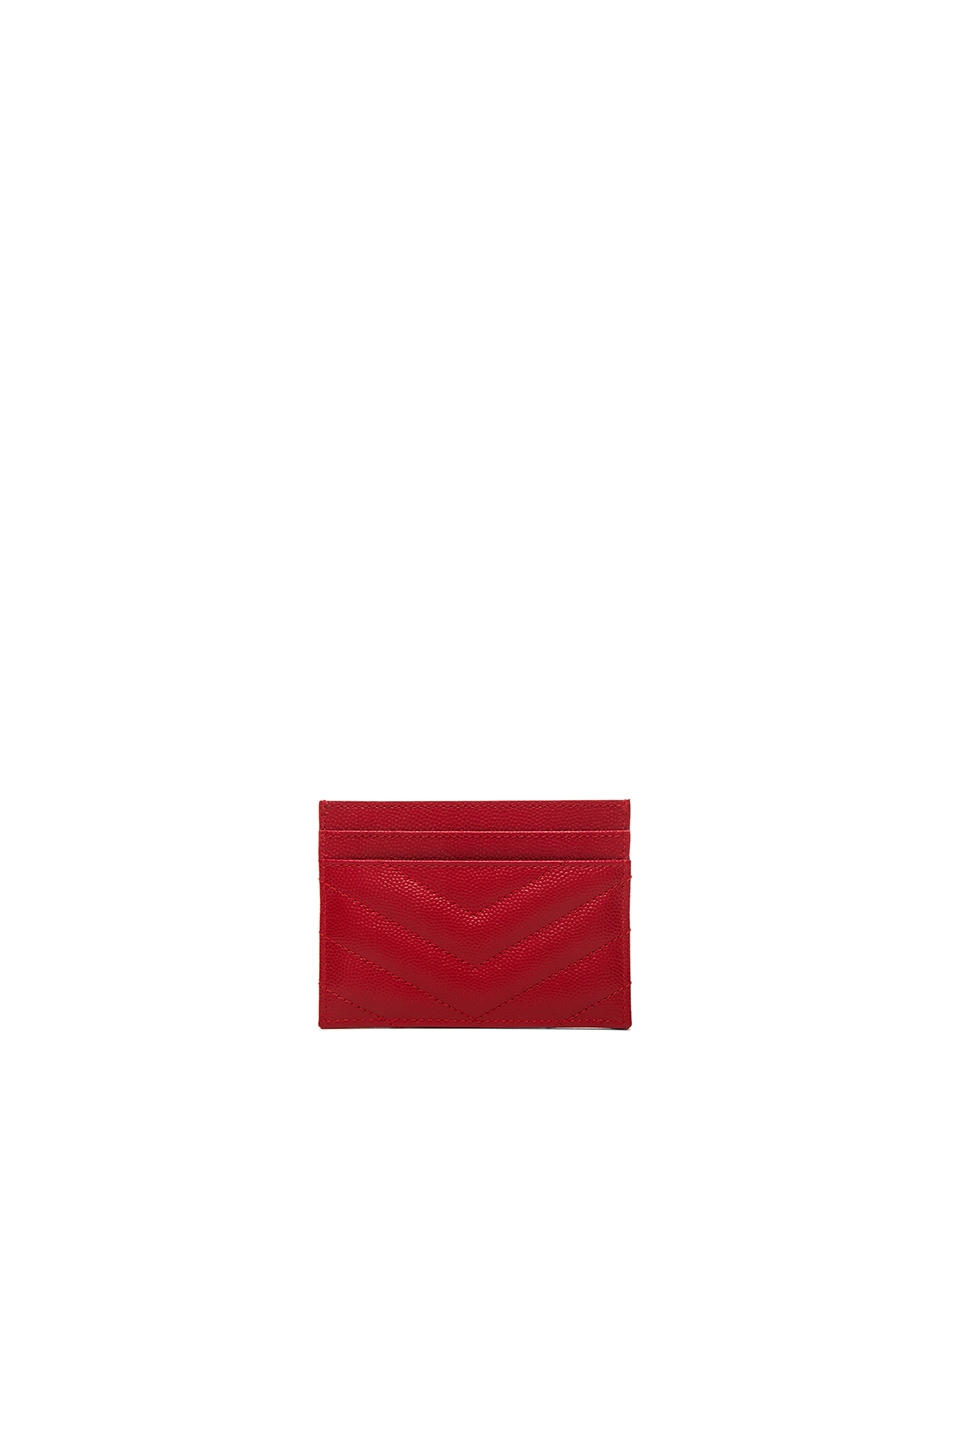 replica ysl card holder